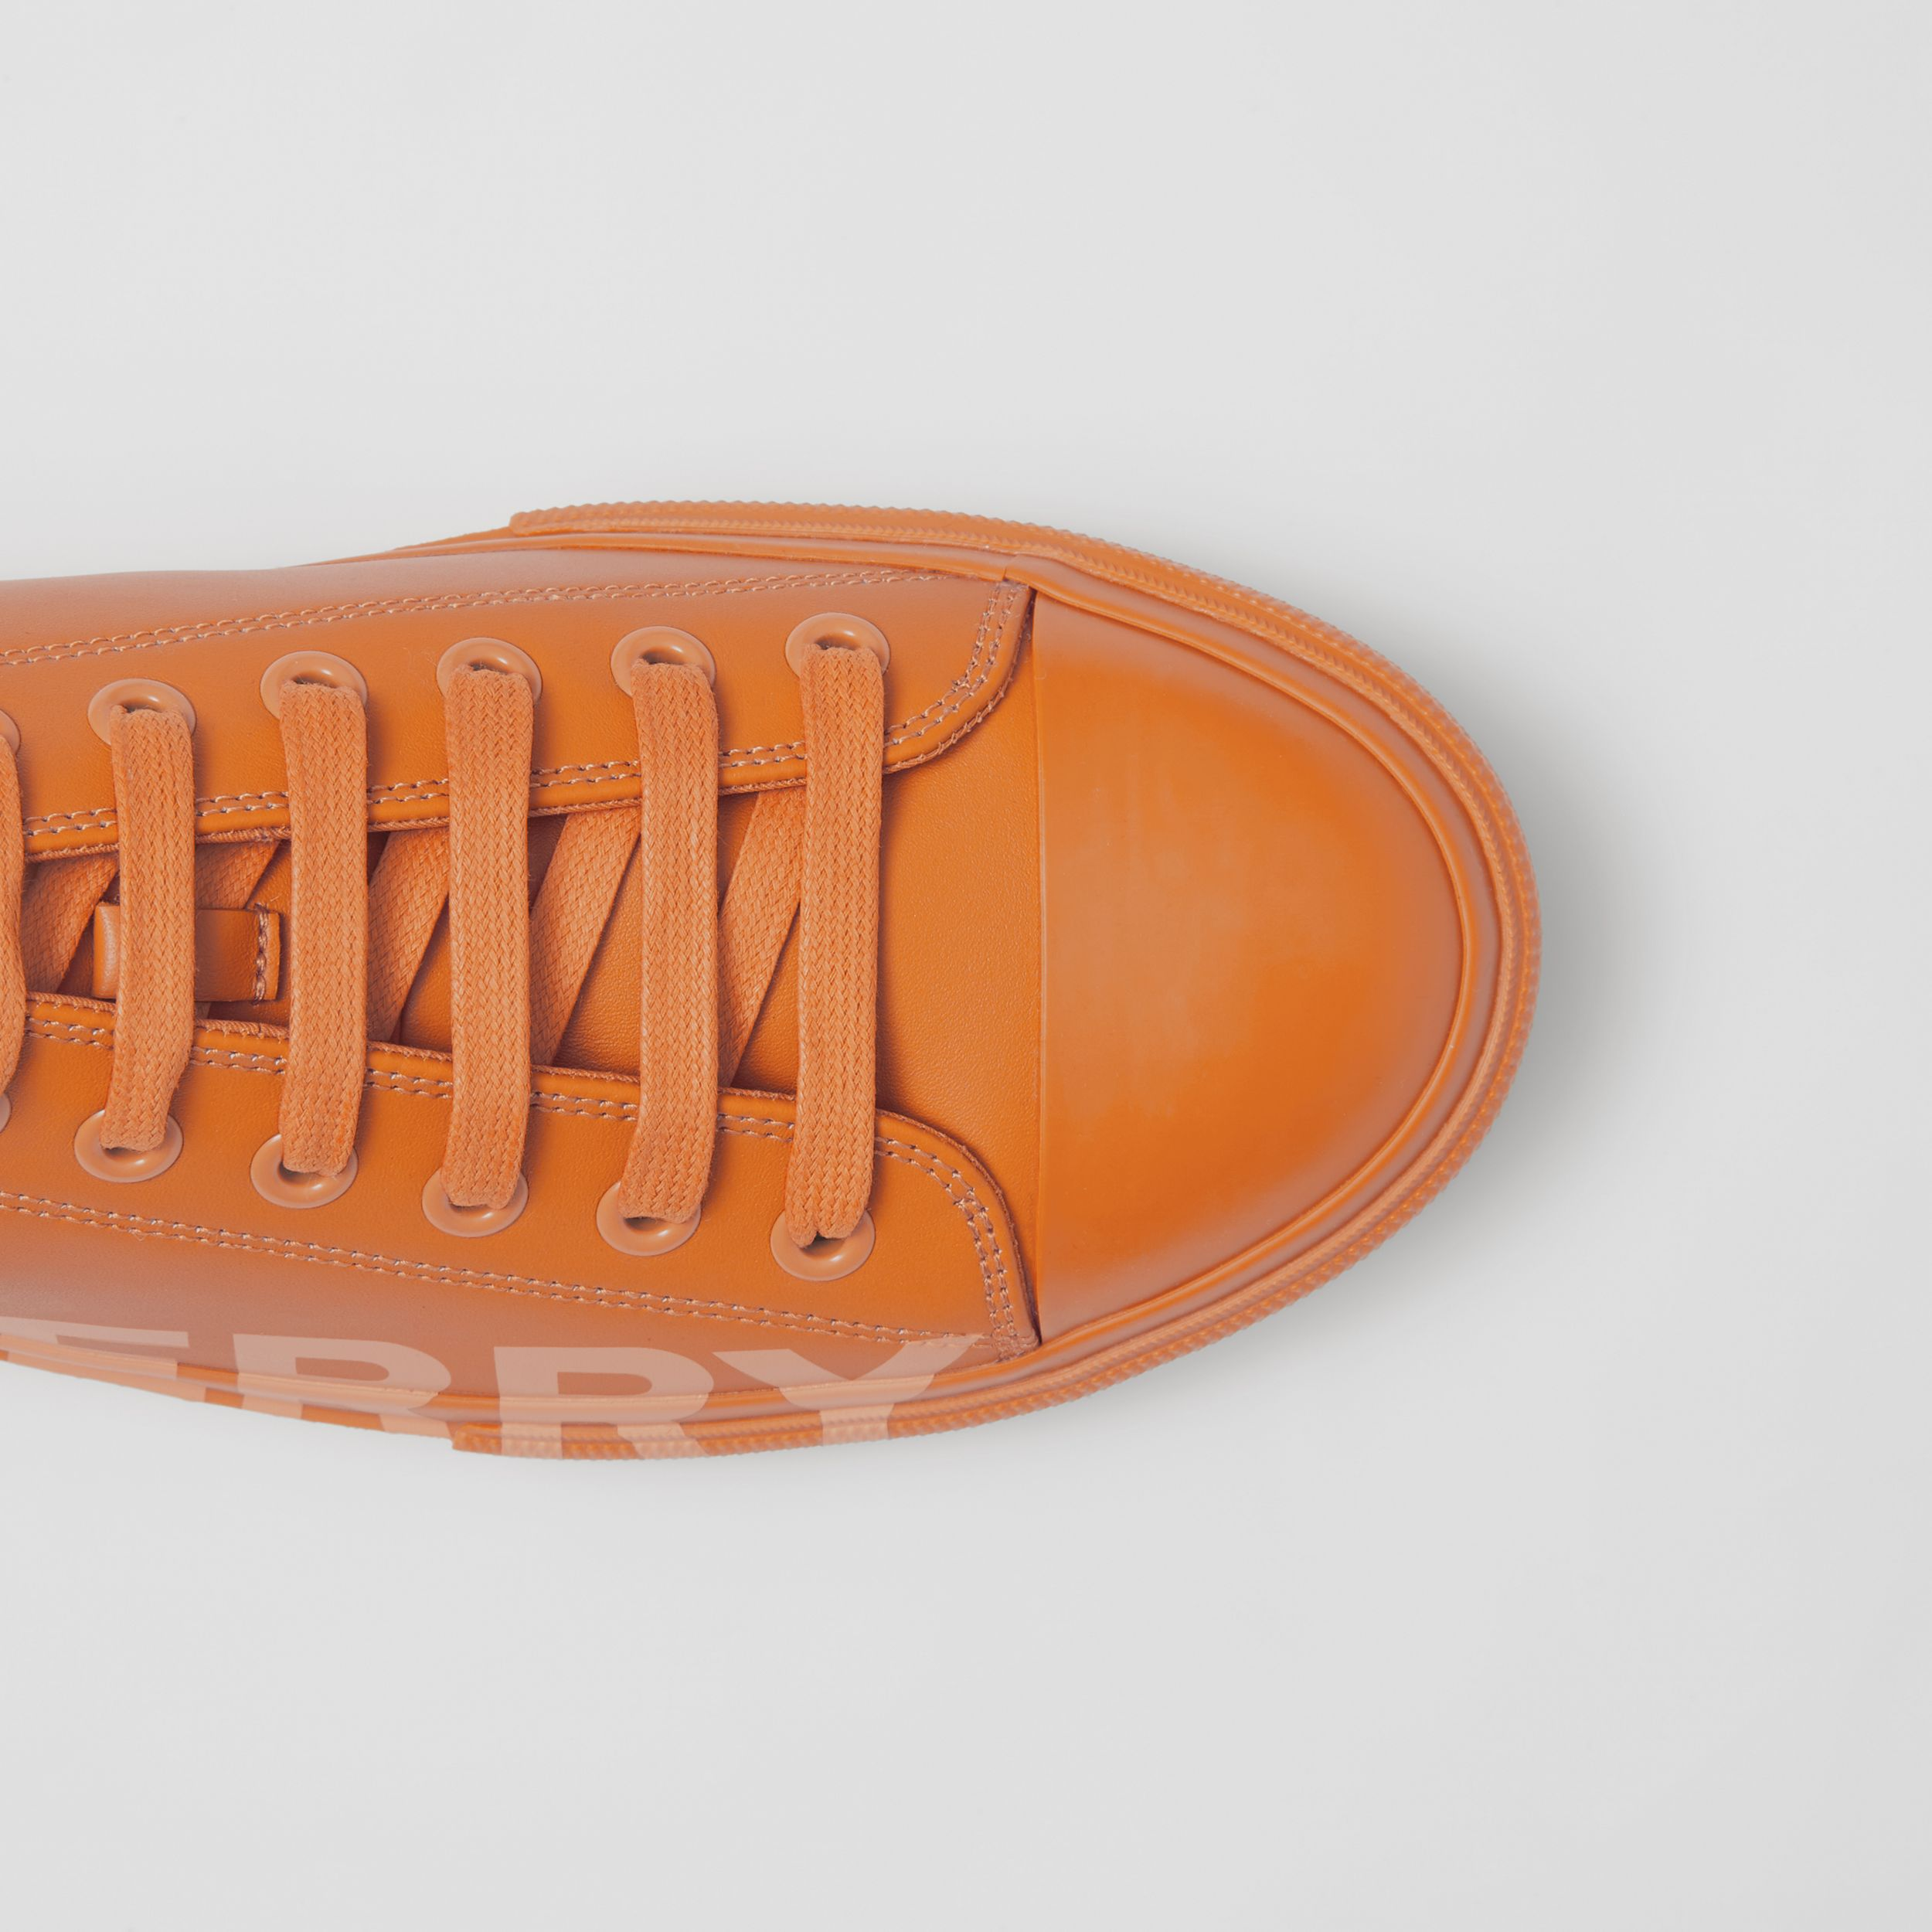 Sneakers en cuir avec logo – Exclusivité en ligne (Orange Intense) - Homme | Burberry - 2